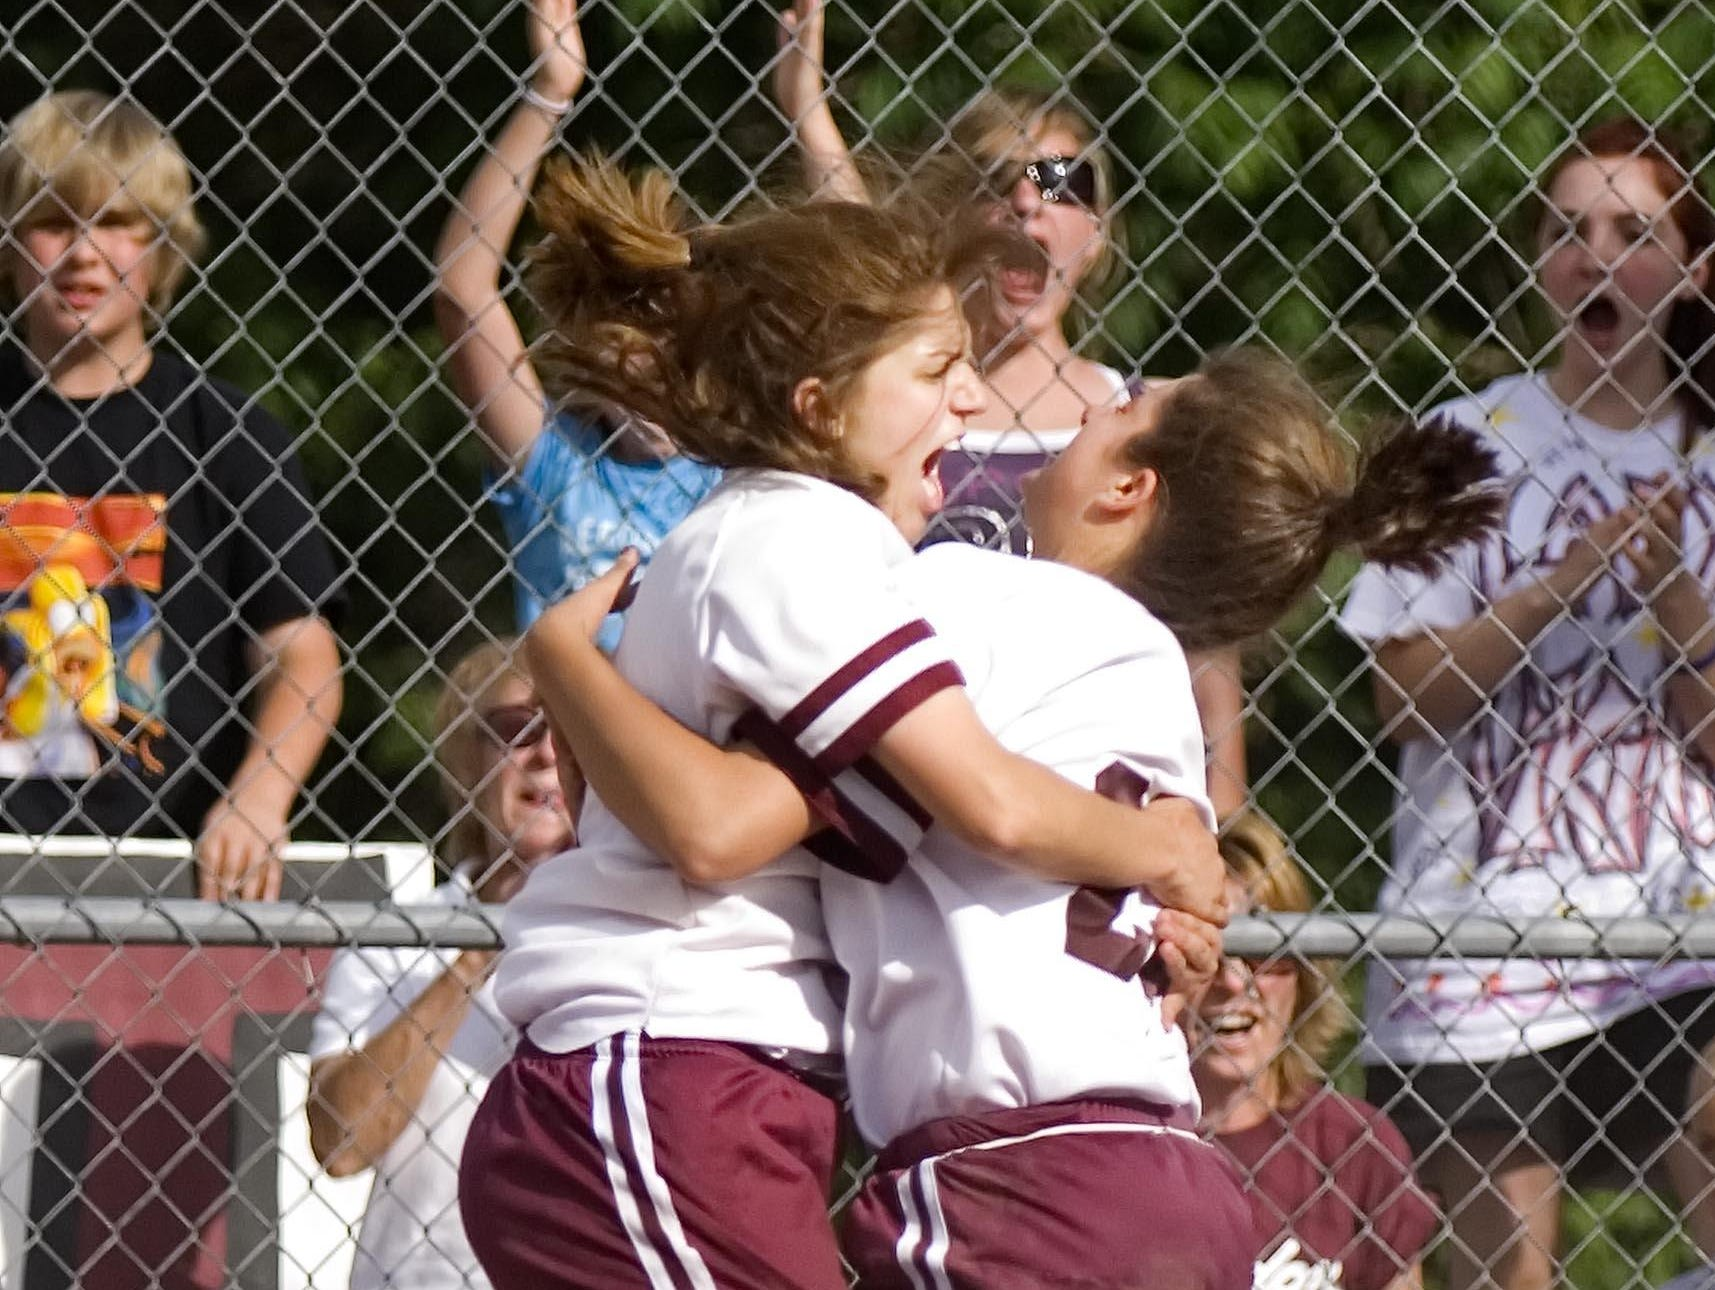 Lyndon Institute's Margaret Hilton (left) and Shauna Poole celebrate after Poole scored the go-ahead run in the 9th inning to defeat Harwood Union High School in the Division 2 state softball championships in Poultney on Friday June 13, 2008. (GLENN RUSSELL, Free Press)